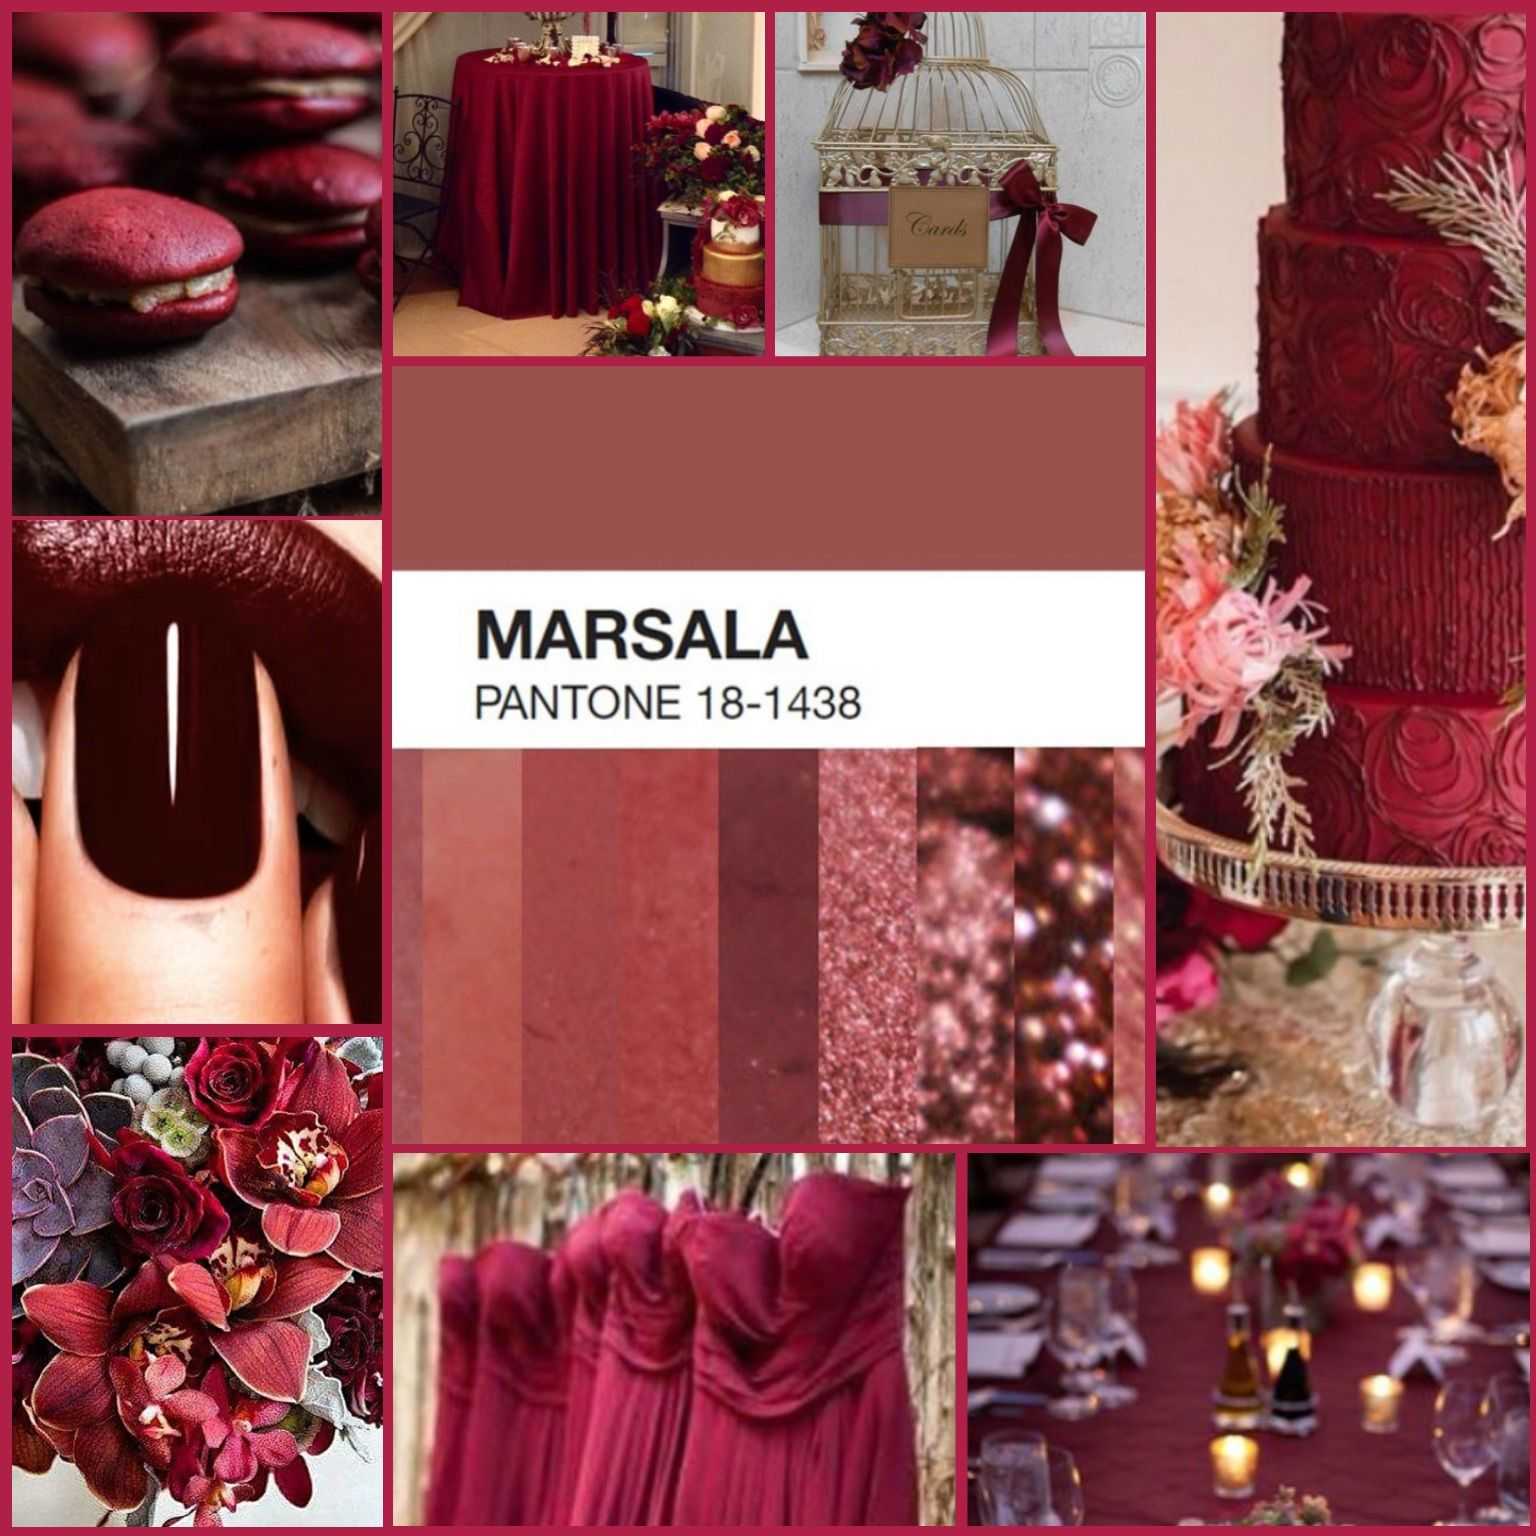 Le Jardin Des Fleurs Bordeaux Nouveau Pantone Colour Masala For 2015 Spice Up You Event | Salon ...